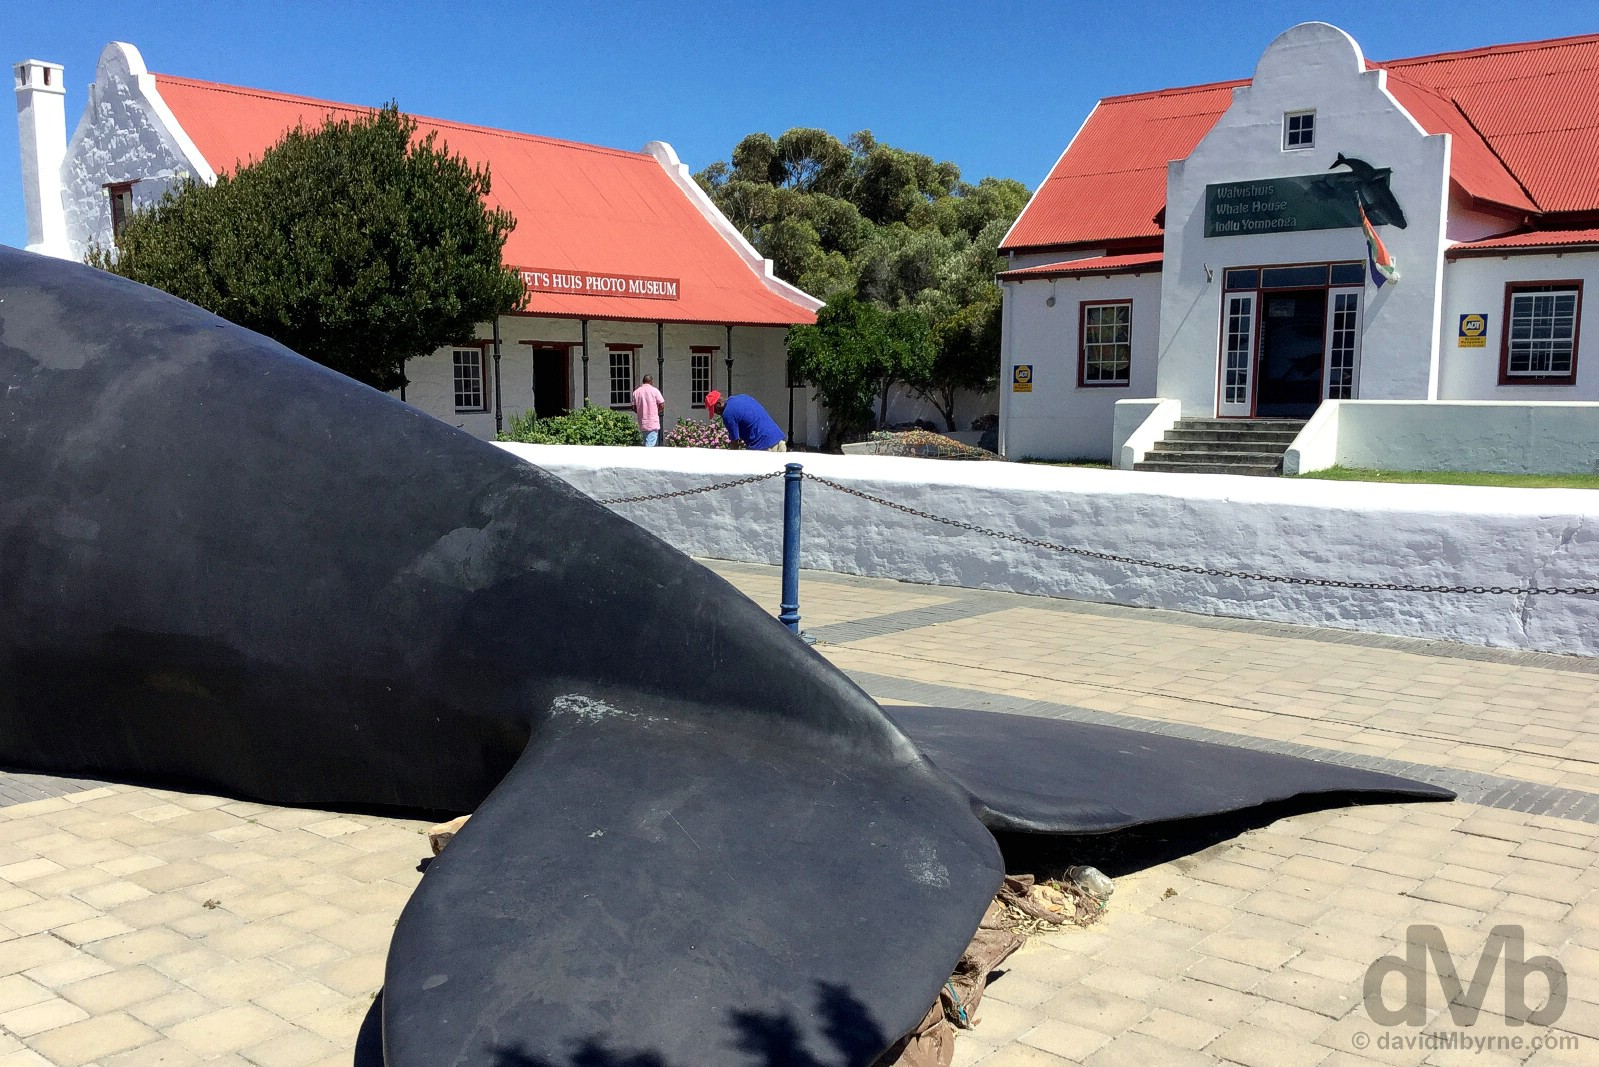 Outside the Whale House Museum off Village Square, Hermanus, Overberg, Western Cape, South Africa. February 21, 2017.